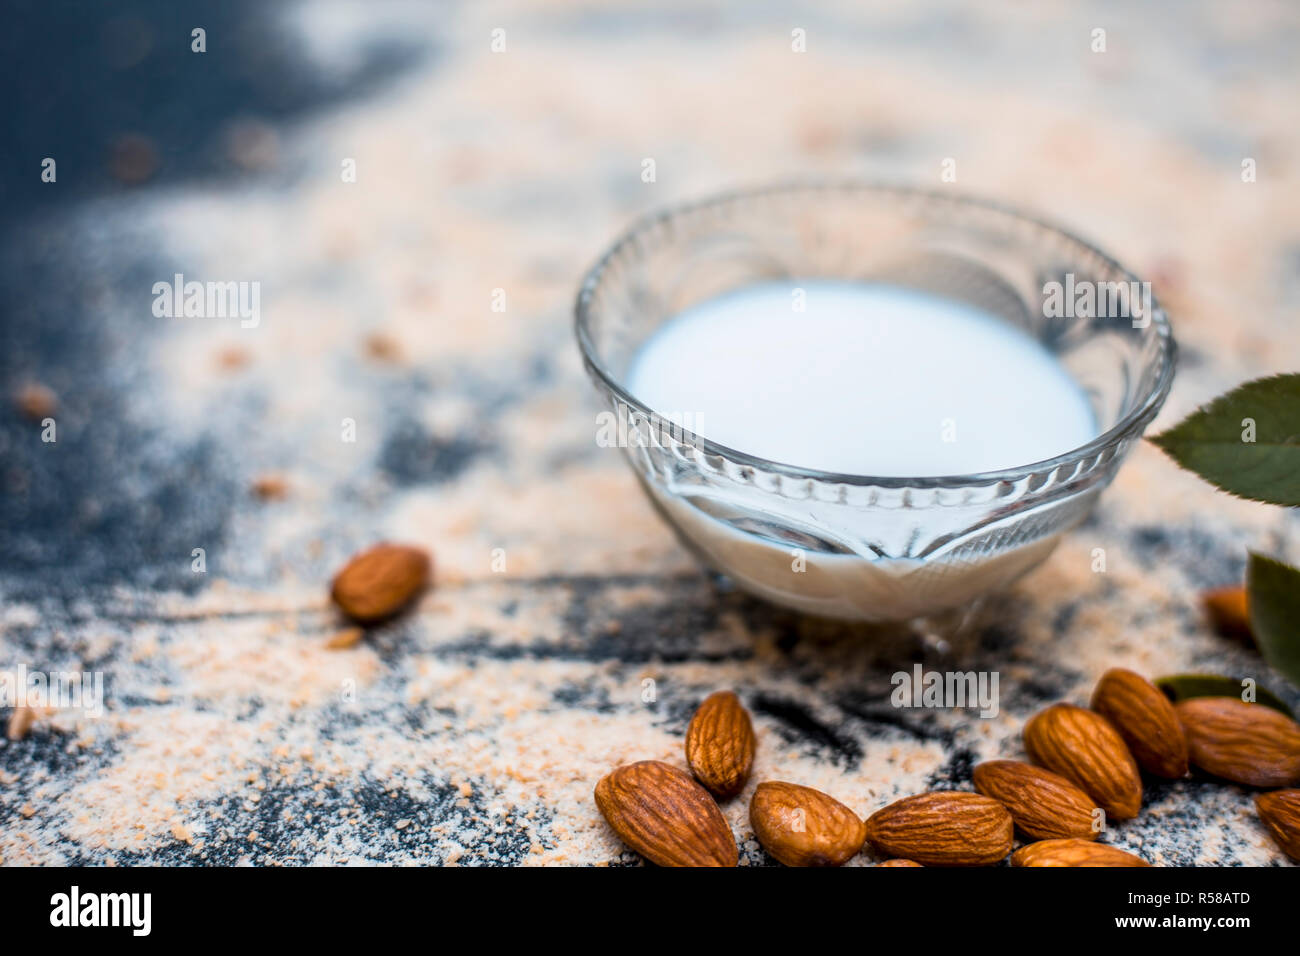 Almond and oat facial